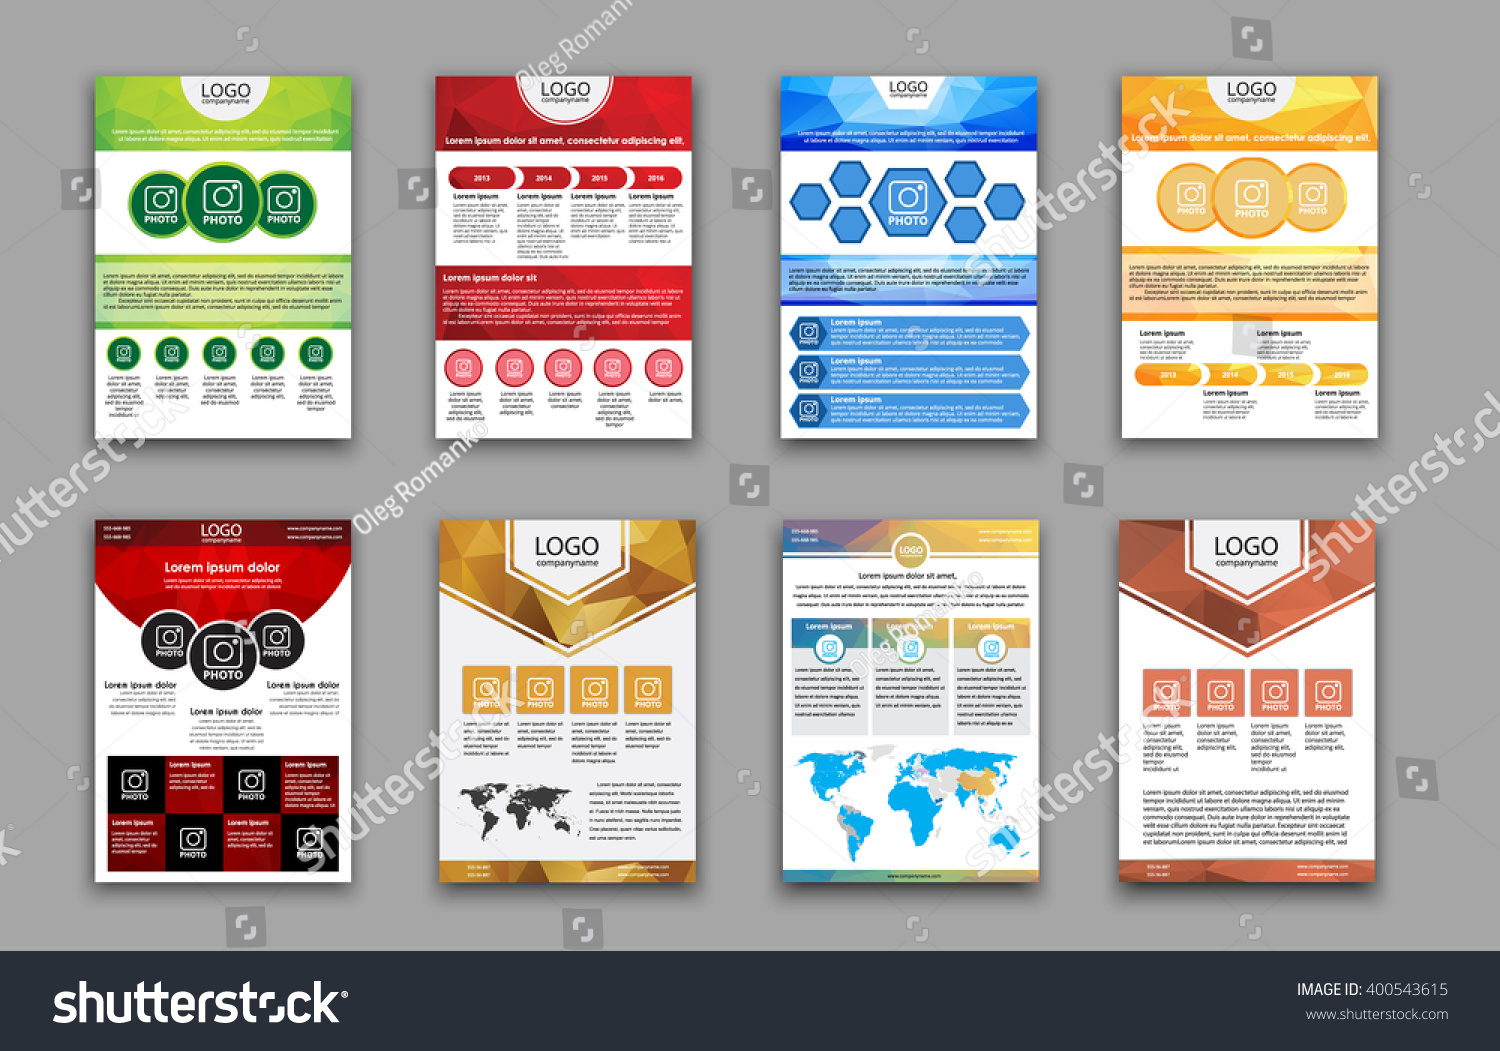 set flyers templates brochures advertising print stock vector set flyers templates brochures for advertising print reports or polygonal colored